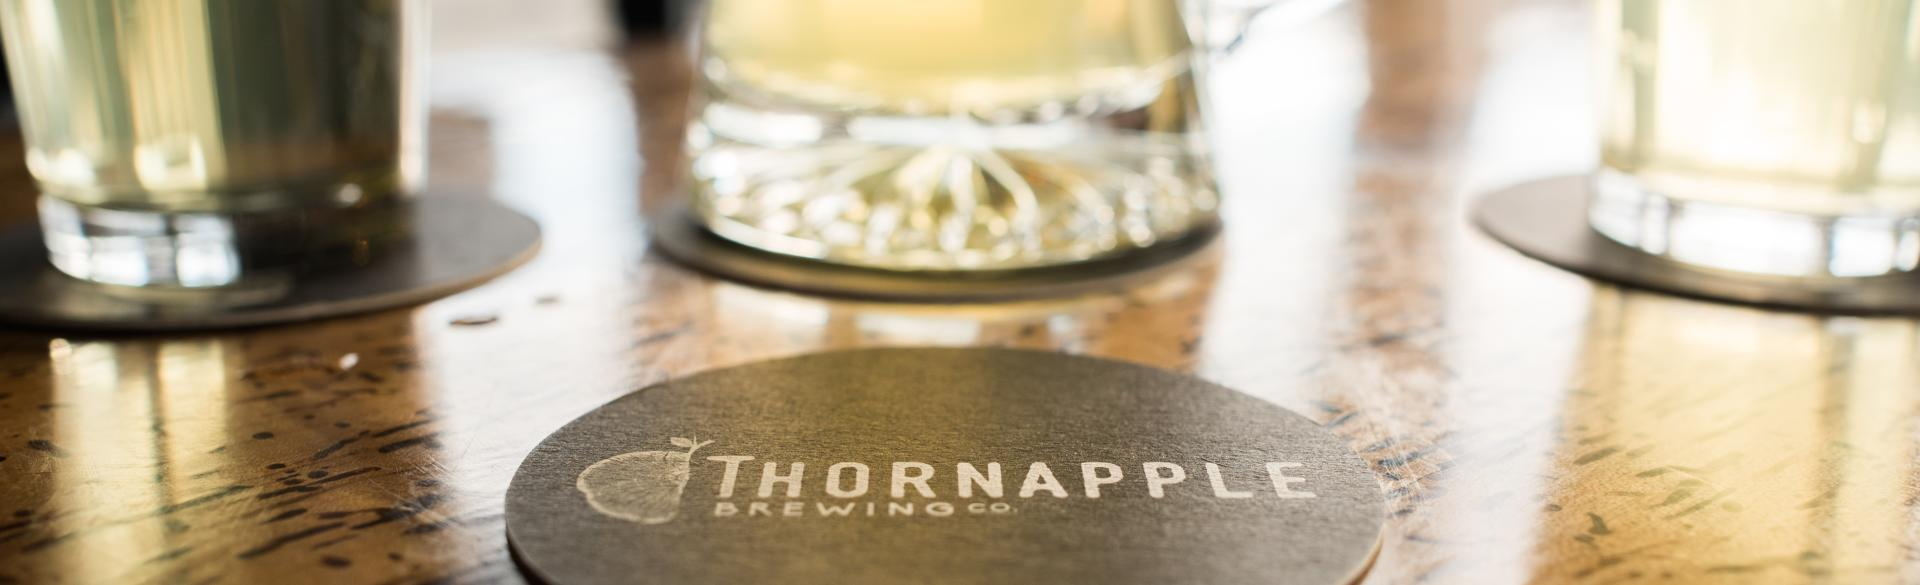 Thornapple Brewing Co.